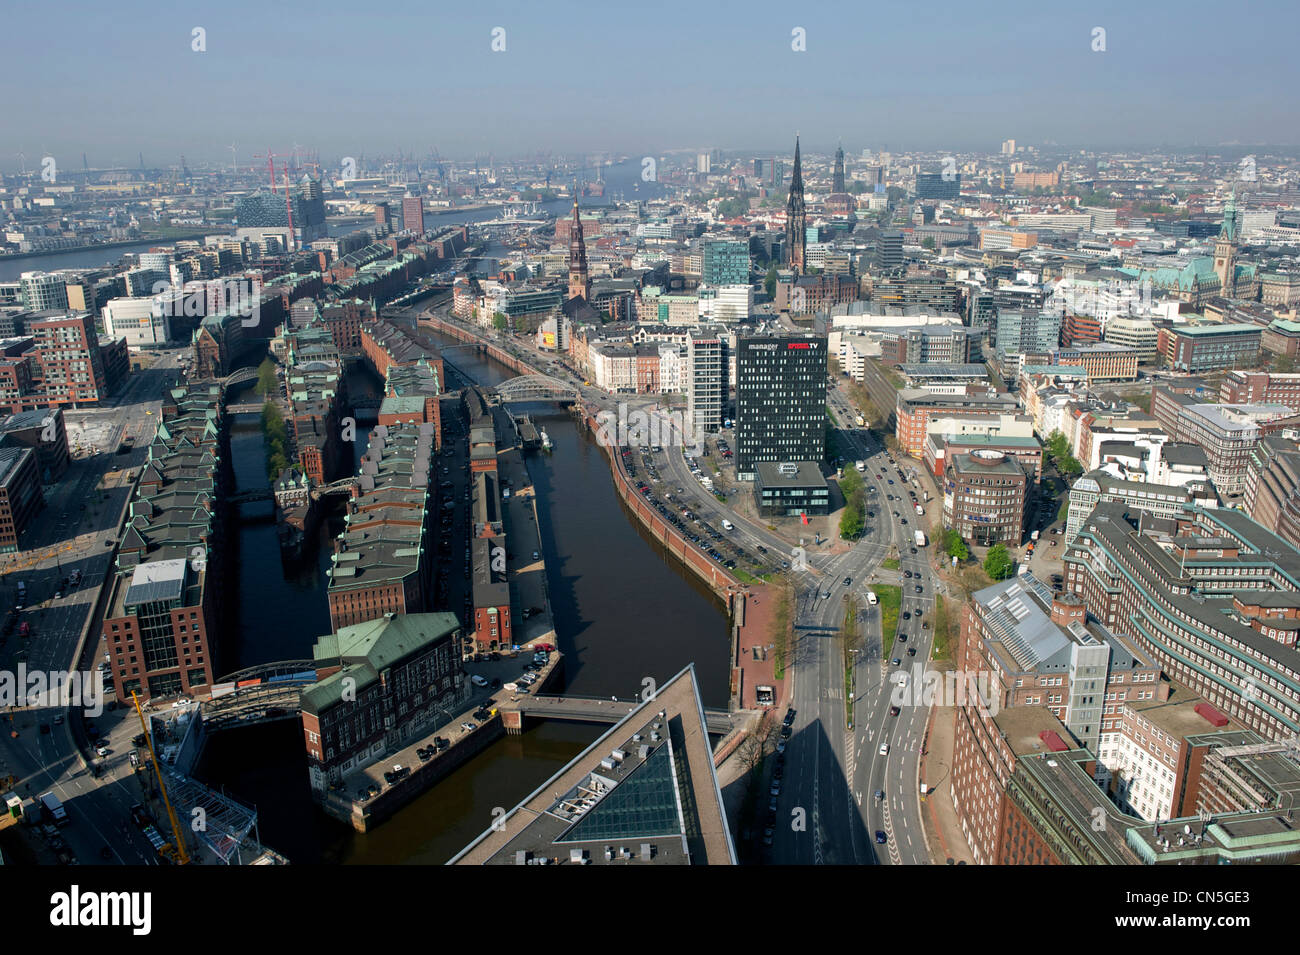 Germany, Hamburg, European Green Capital 2011, general view of Speicherstadt, district housing the largest historical Stock Photo